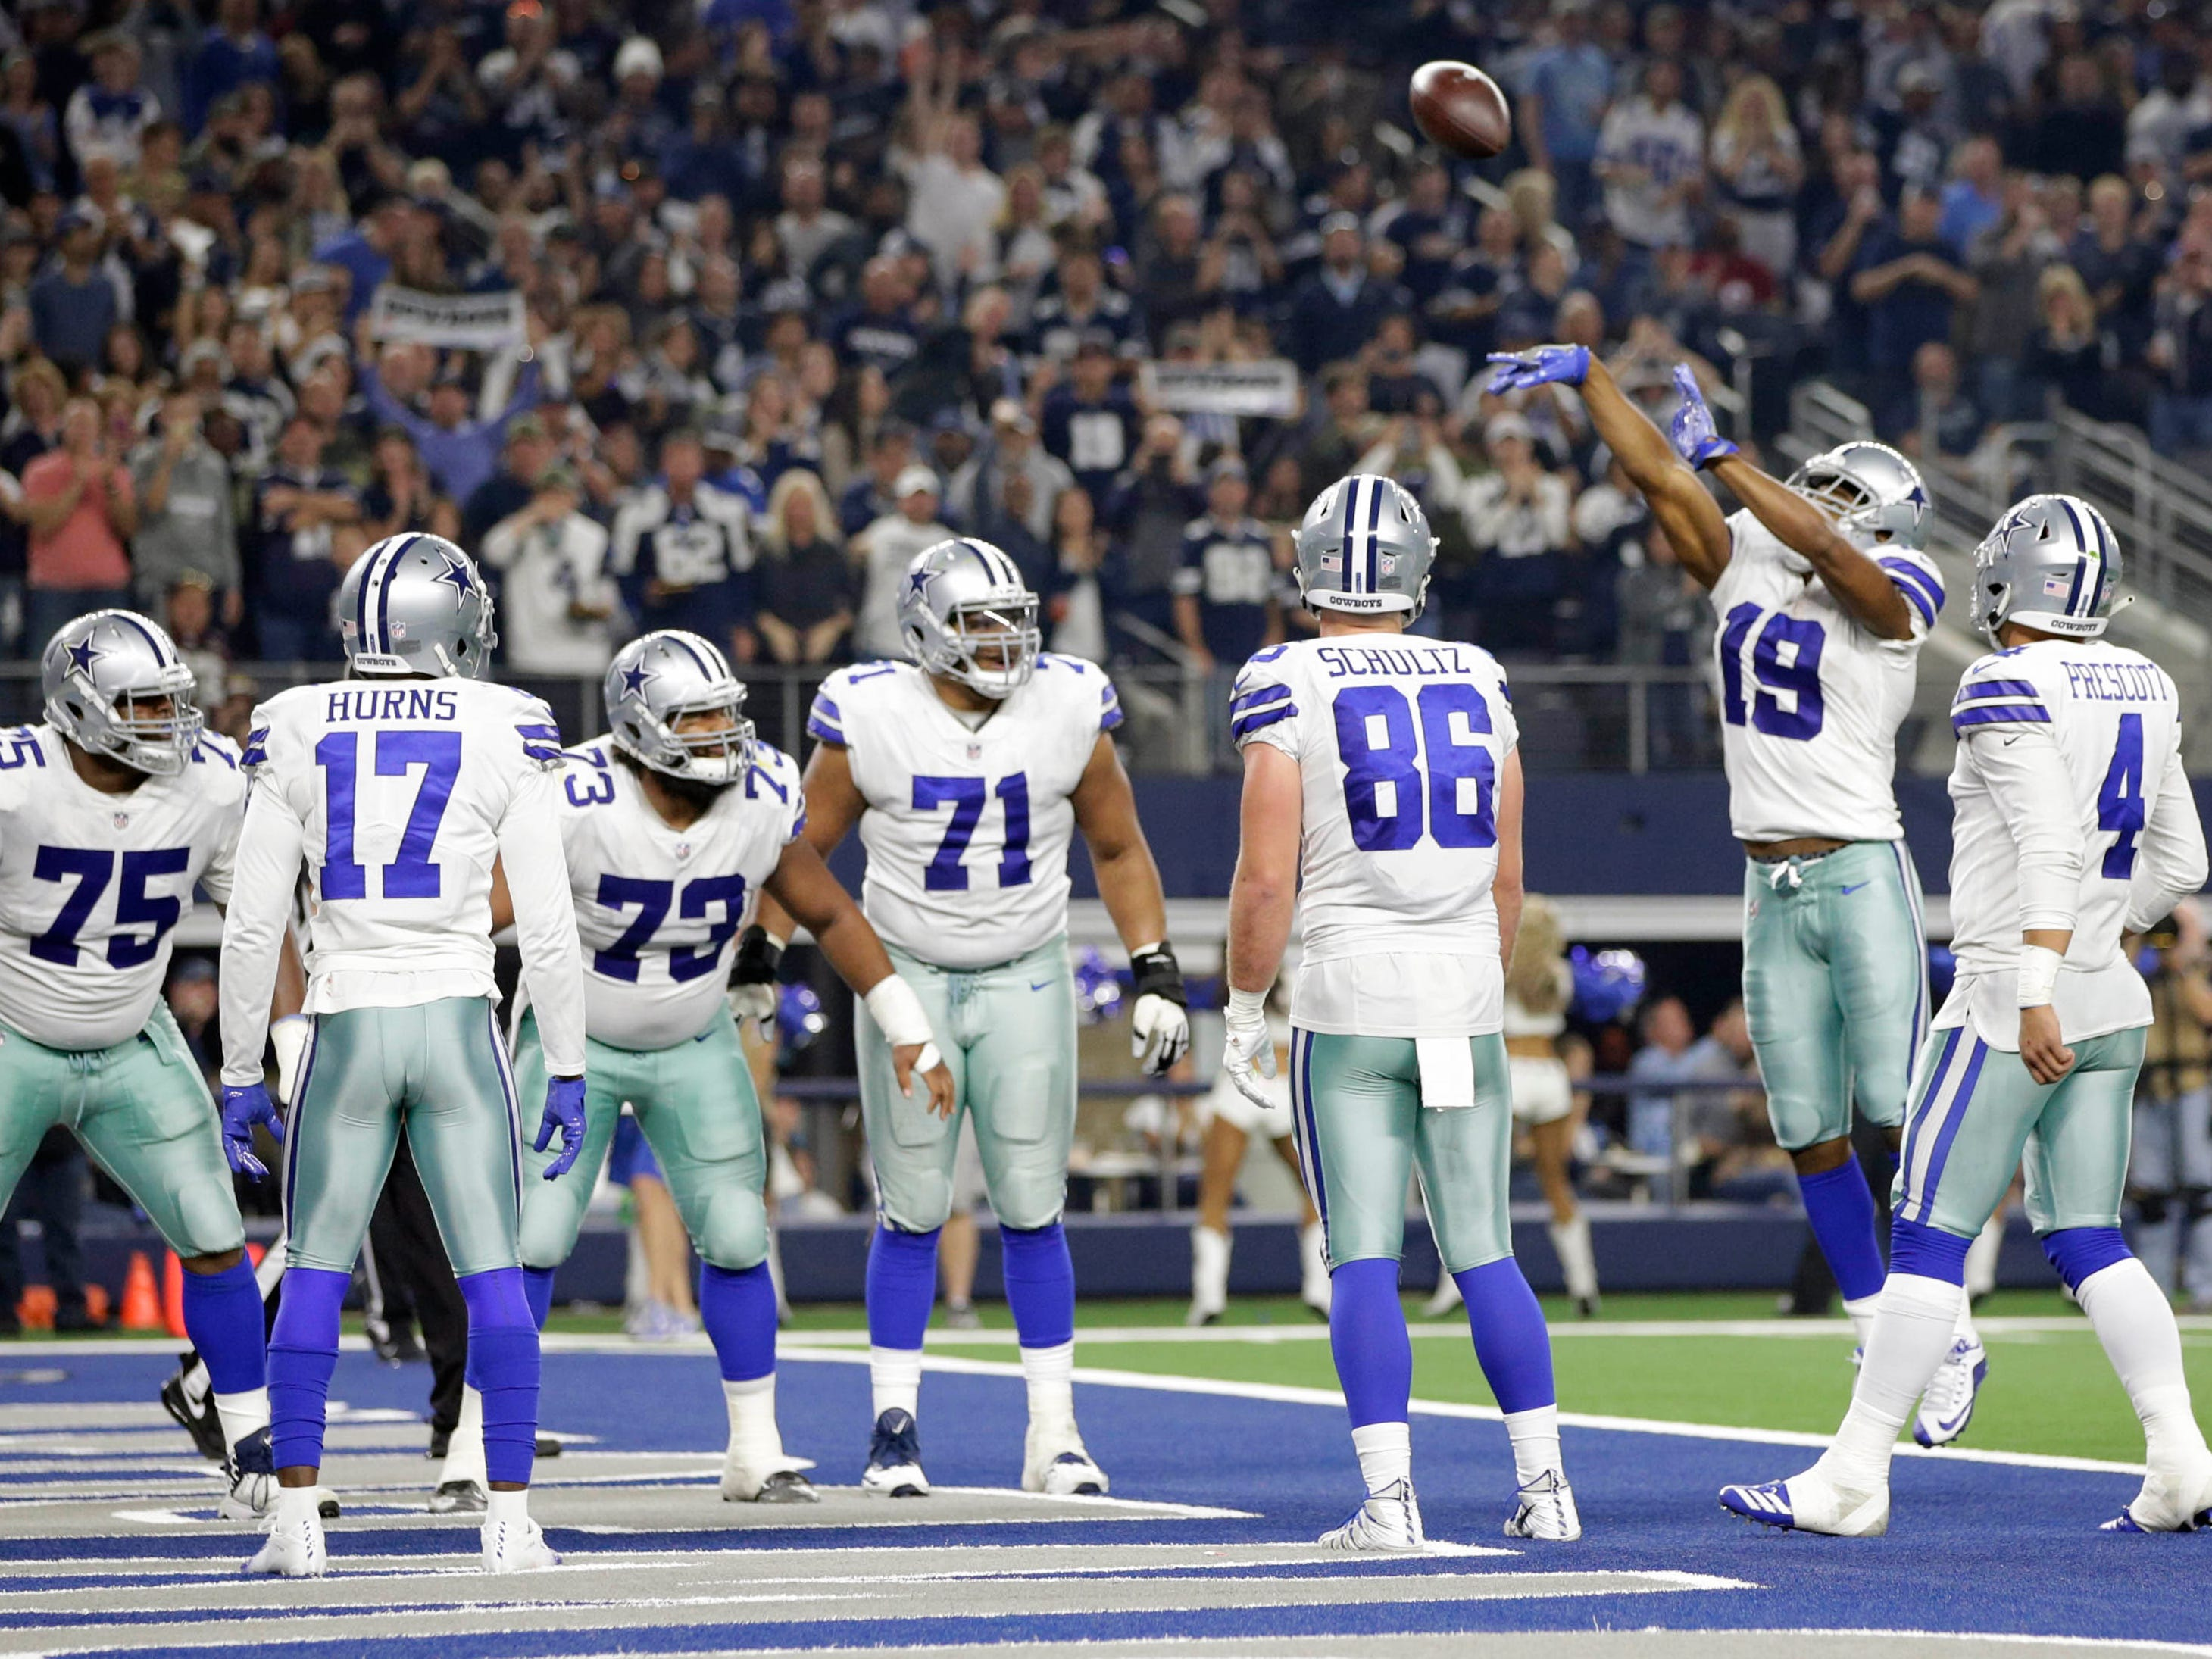 Cowboys receiver Amari Cooper (19) celebrated one of his two touchdowns against the Redskins with a Markelle Fultz-inspired free throw over the crossbar.